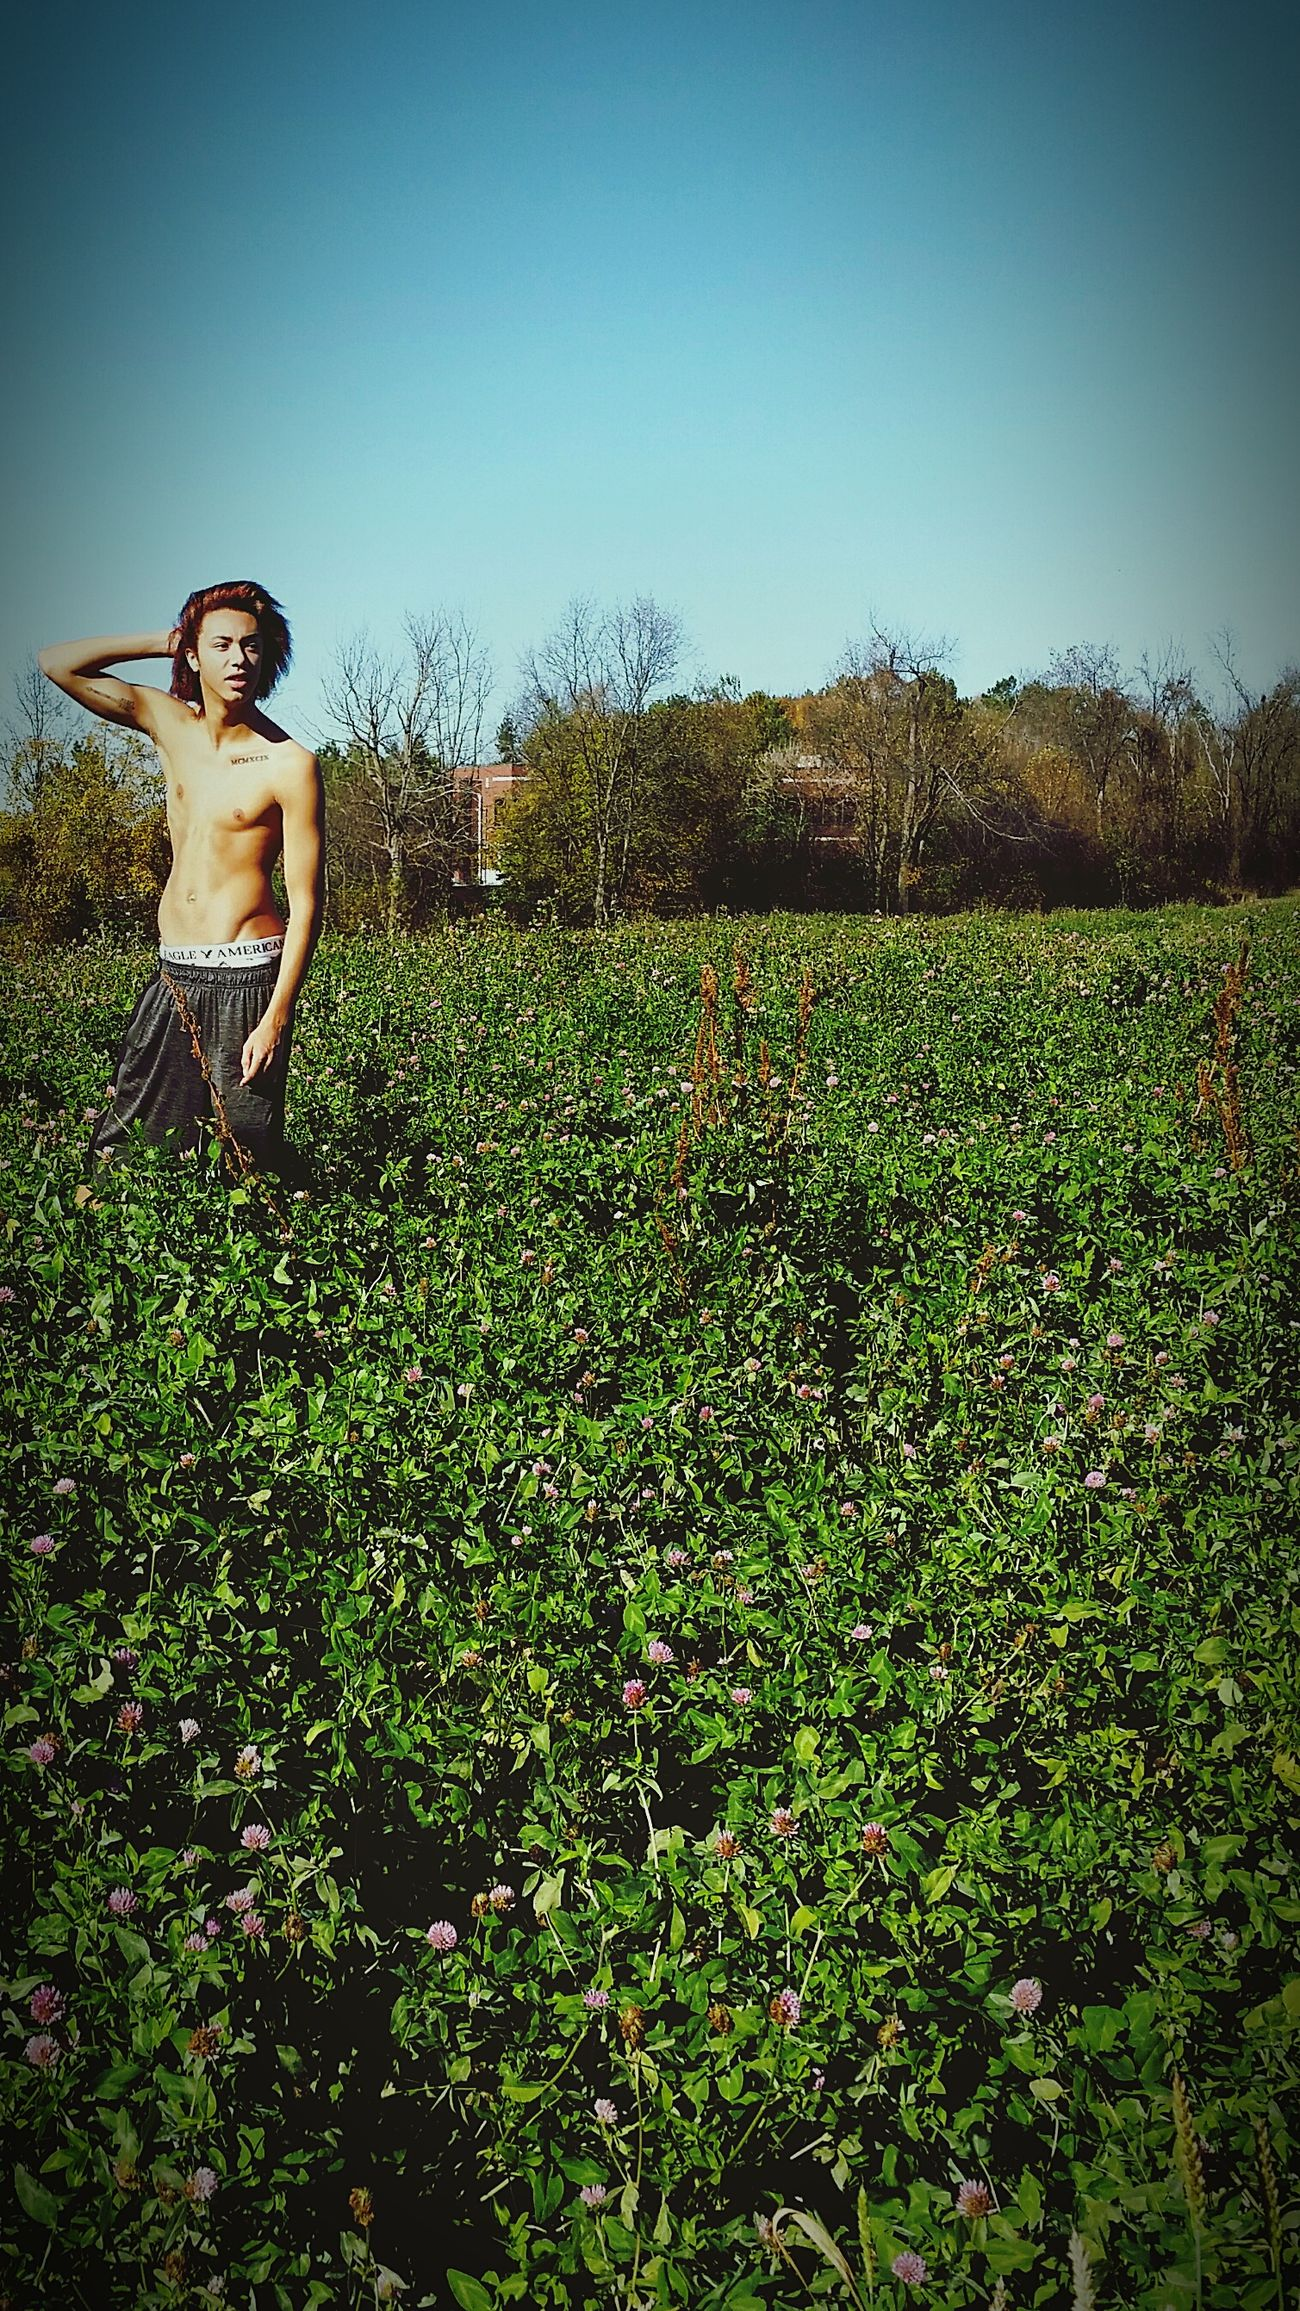 Meadow Flowers Malemodel  Sexyboy Shirtlessyoungmanposing! Shirtless Americaneagle Underwear Textures And Surfaces Longhair Blue Sky Nicebody Happy People Fun Nature Sunny Day